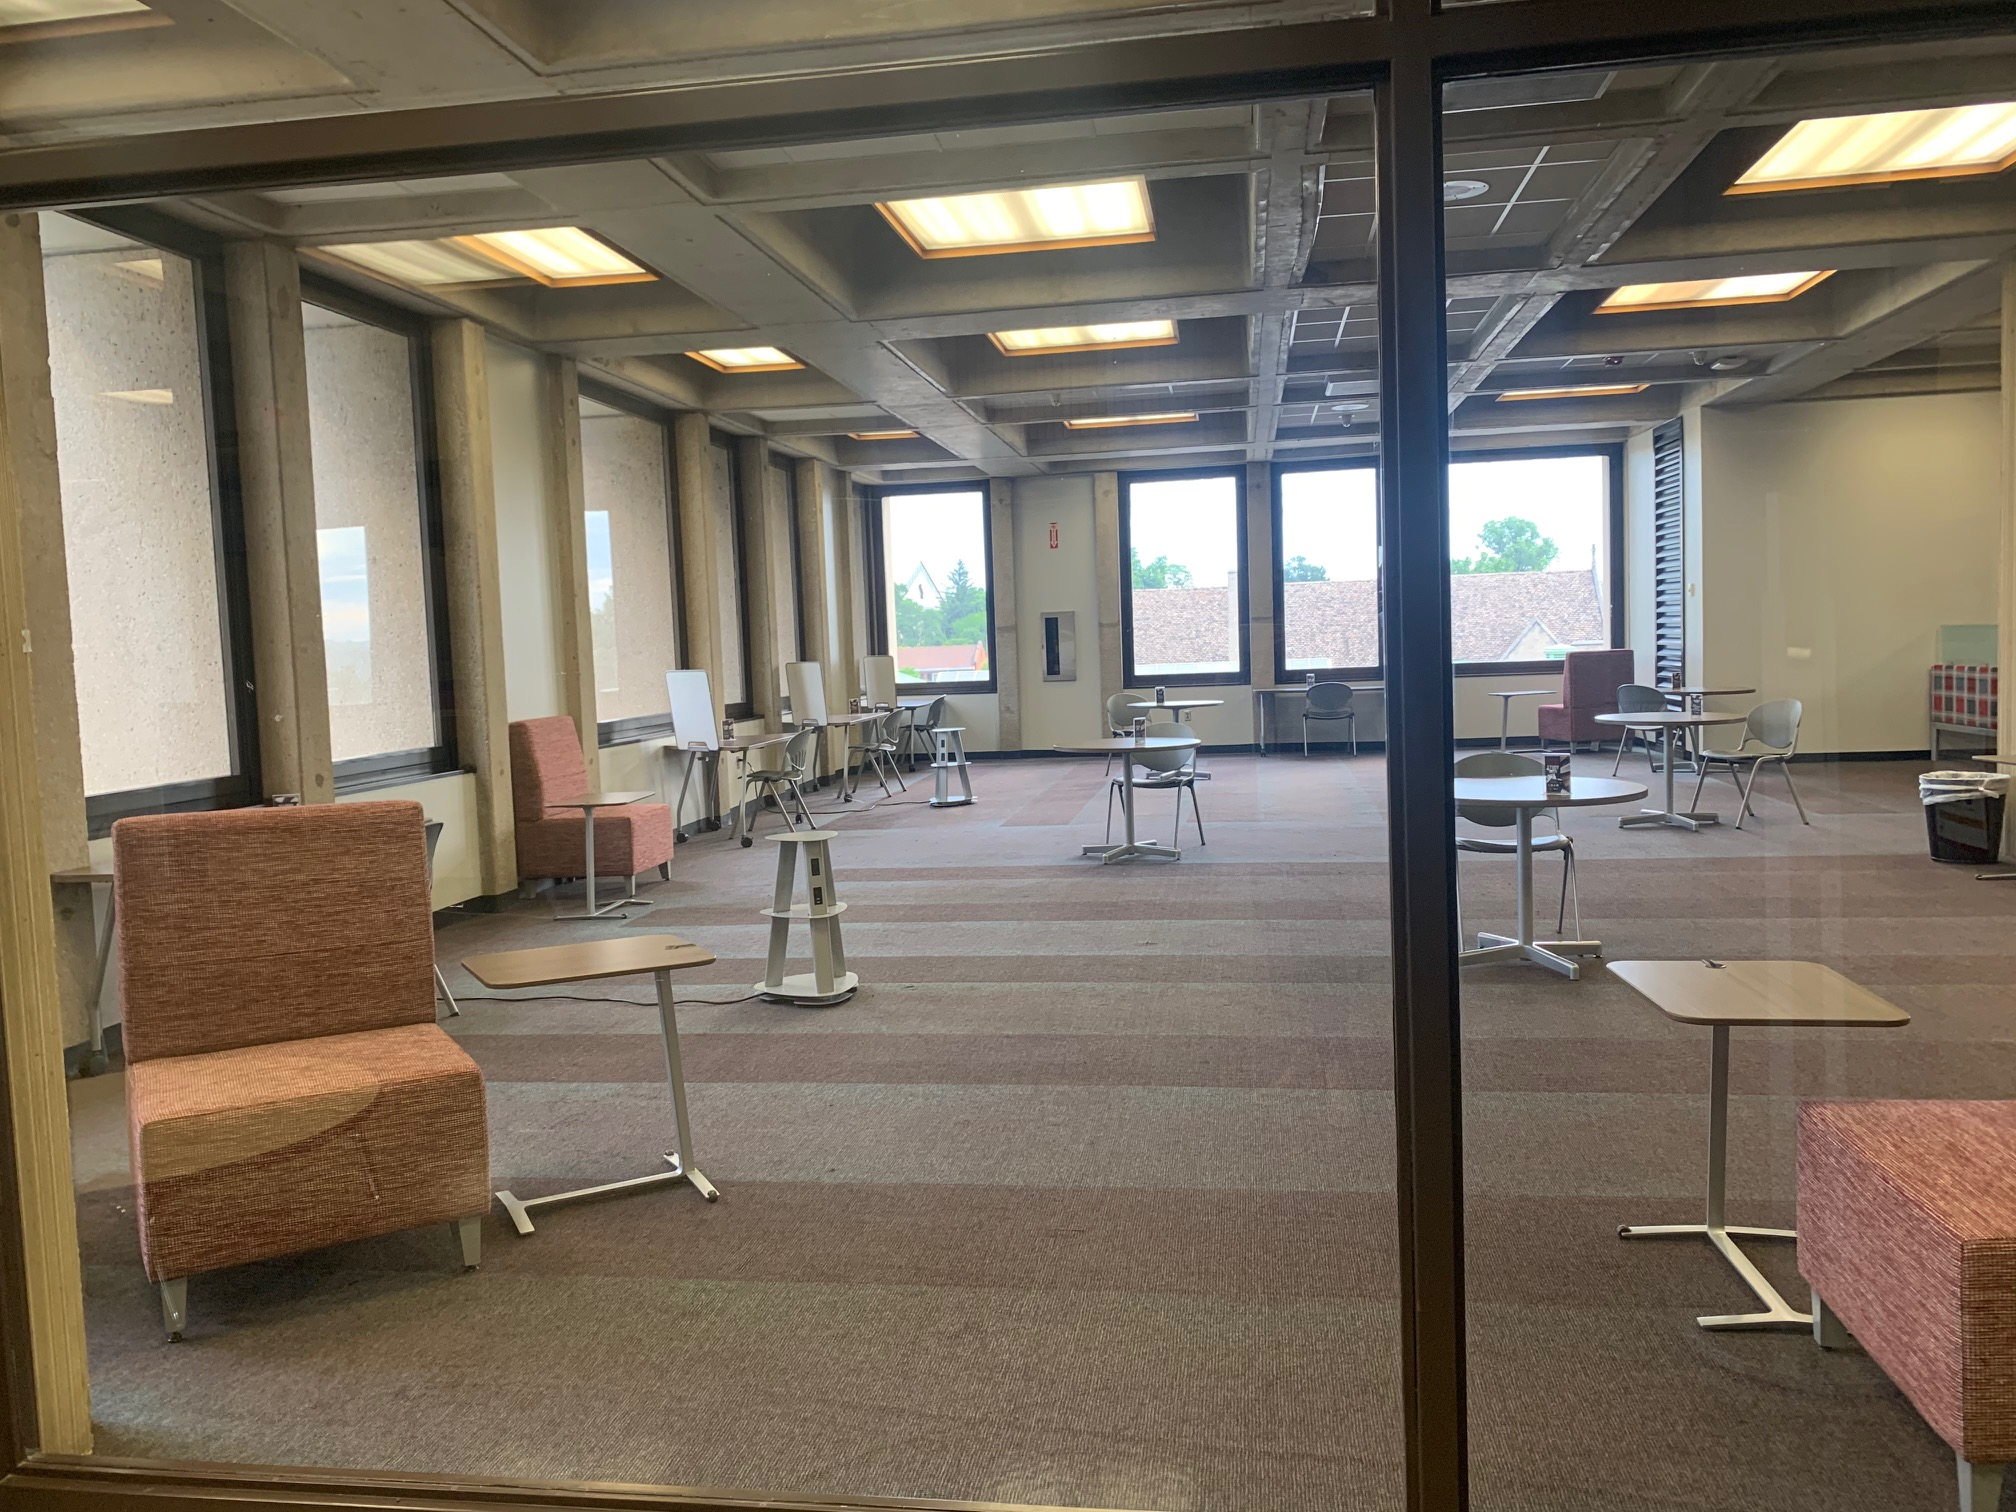 Photo of 6th Floor Silent Study Area